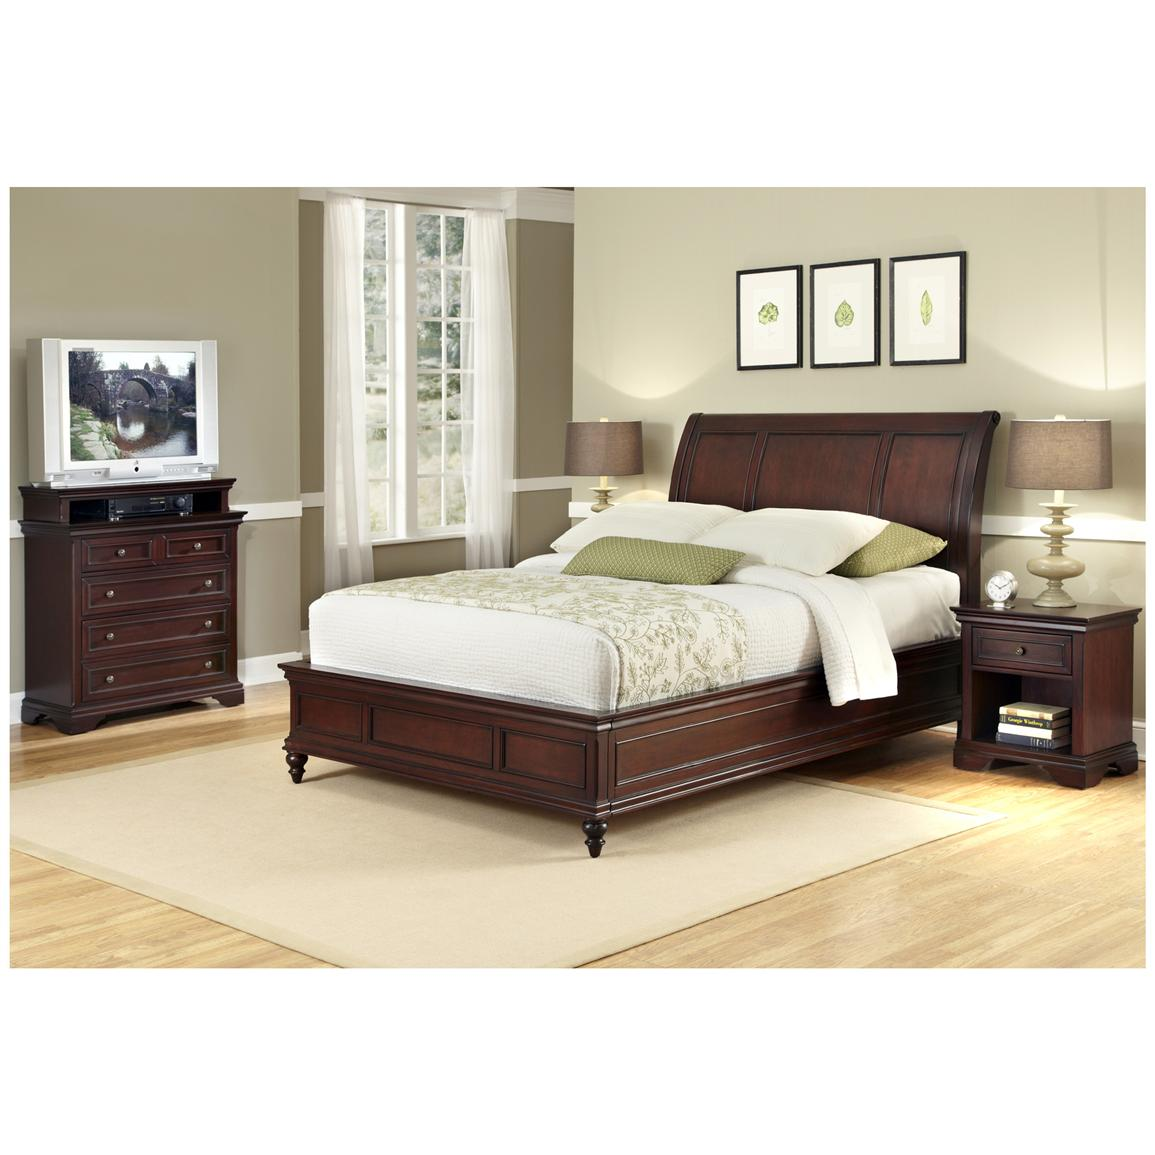 Lafayette King Sleigh Bed Headboard, Nightstand and Media Chest